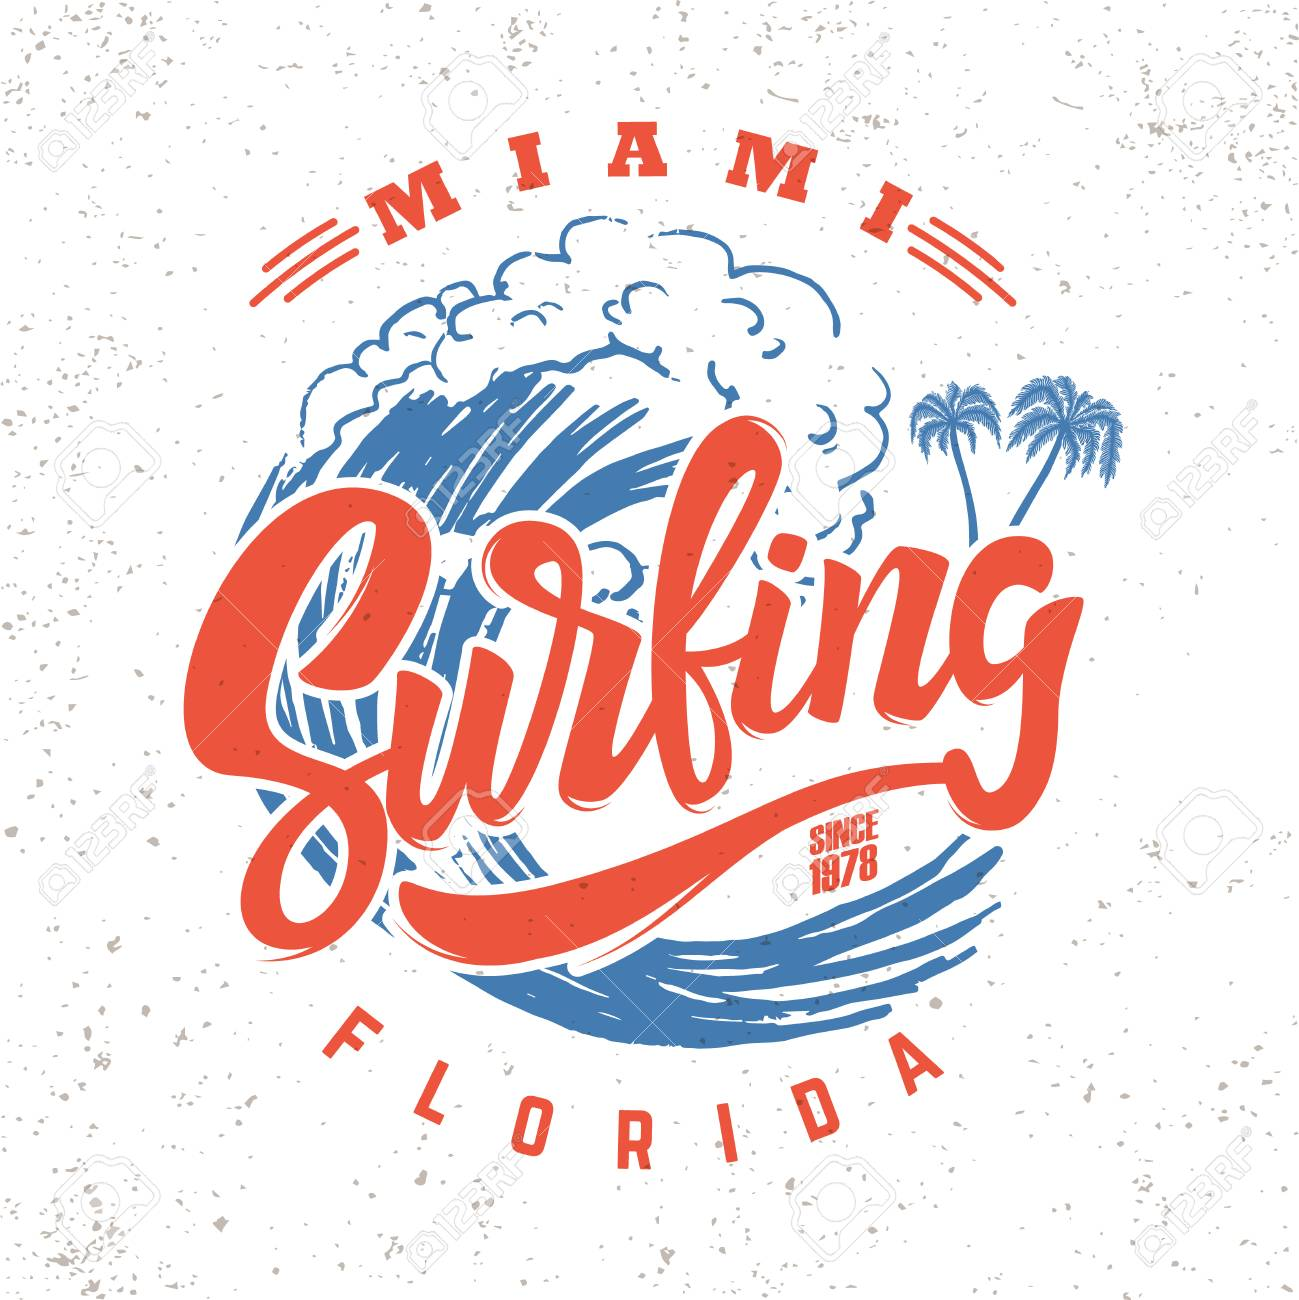 Surfing miami. Lettering phrase on background with sea wave - 104927606